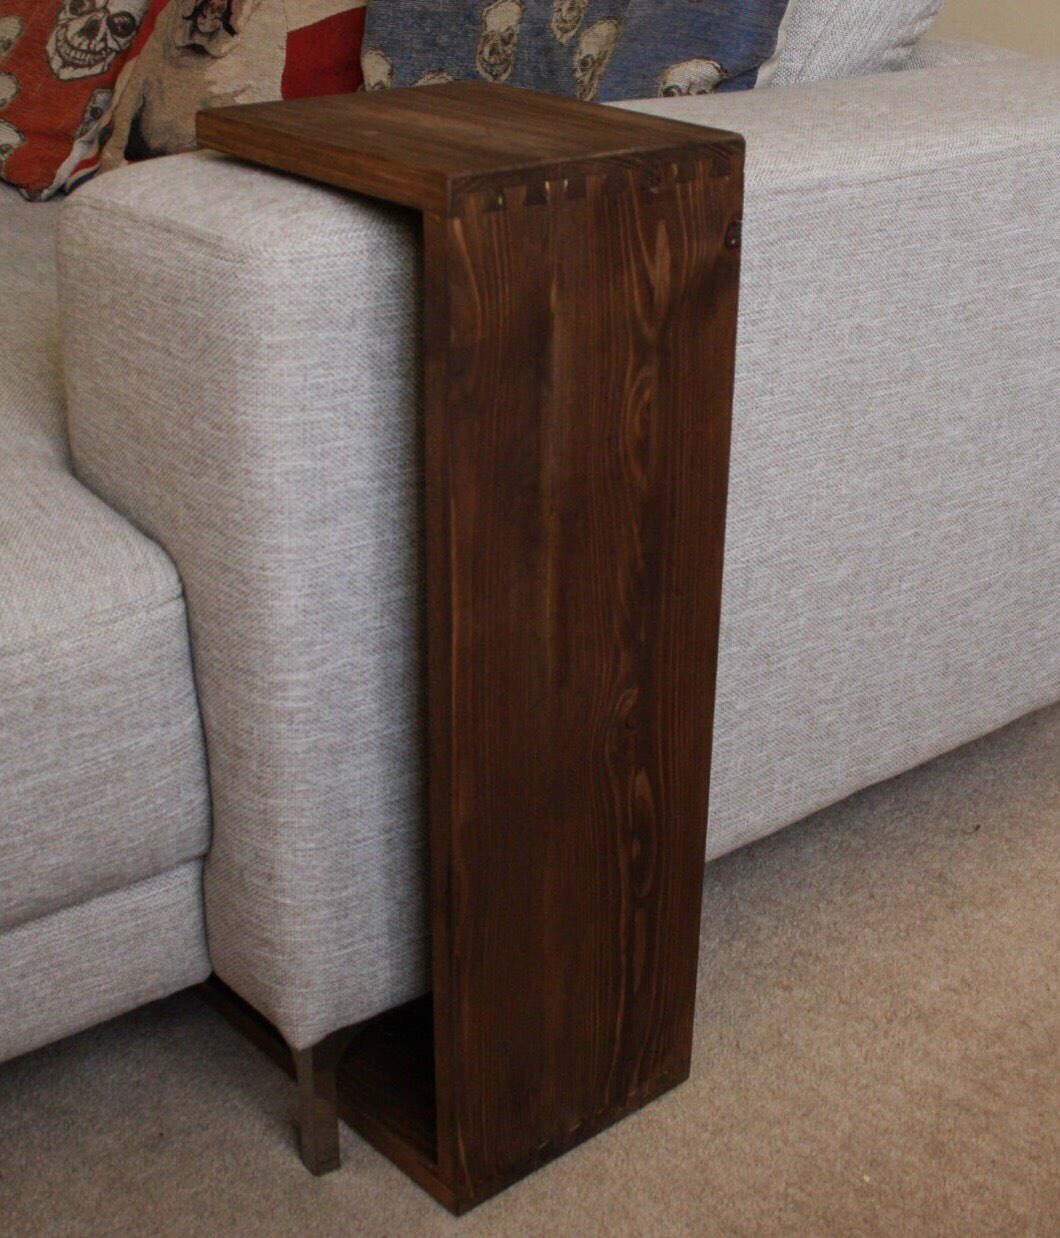 end awesome rest for sets tables slide of storage tray with unique that small ideas table under chair slot square sofa stand couch arm round photos side contemporary